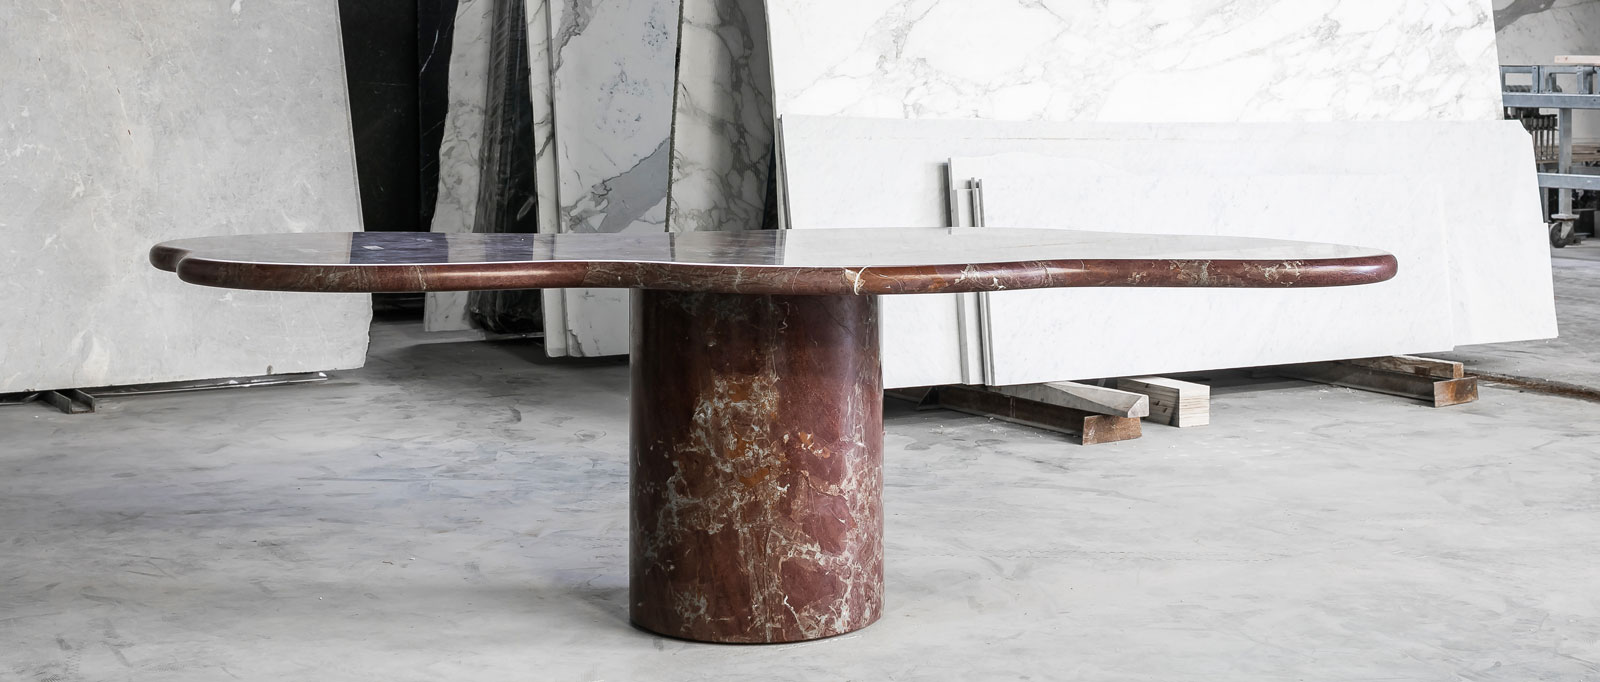 Bieke Casteleyn Marble Dining Table Photo Cafeine Collectible 2020 | Yellowtrace